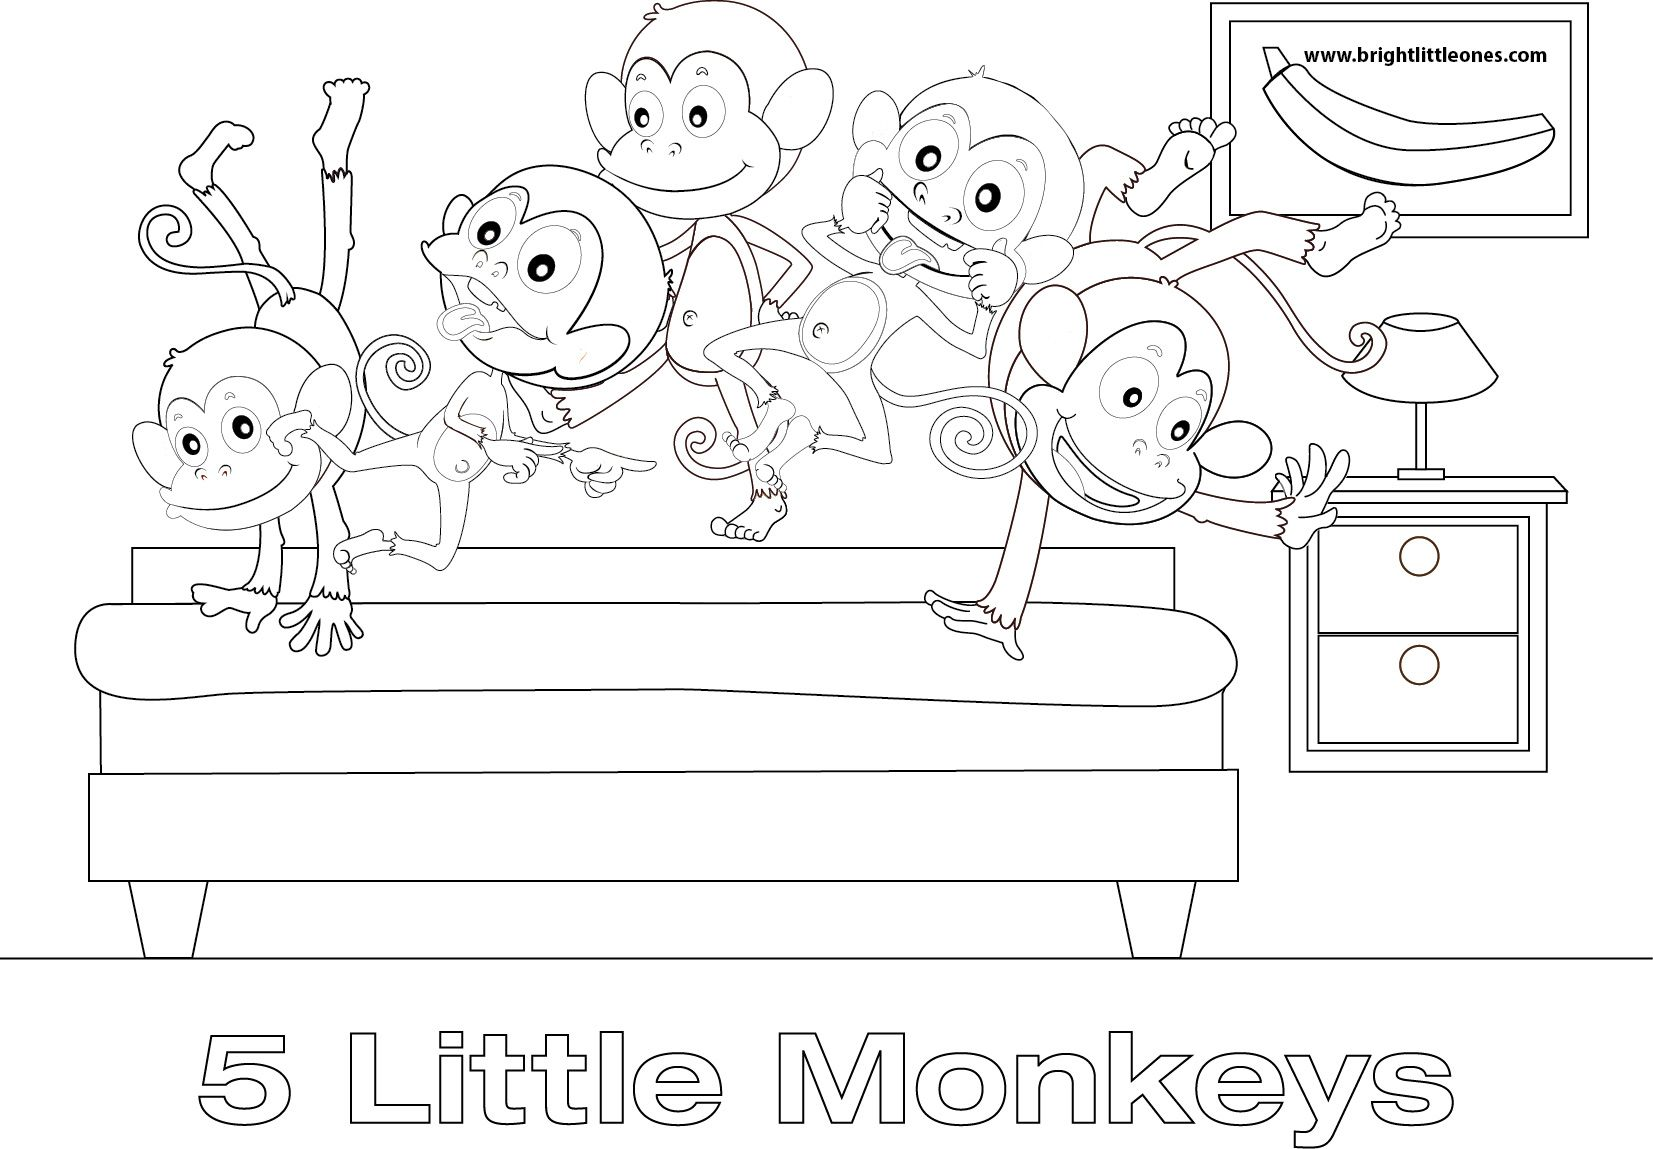 Free Printable! Five Little Monkeys Coloring Sheet - Bright Little ...